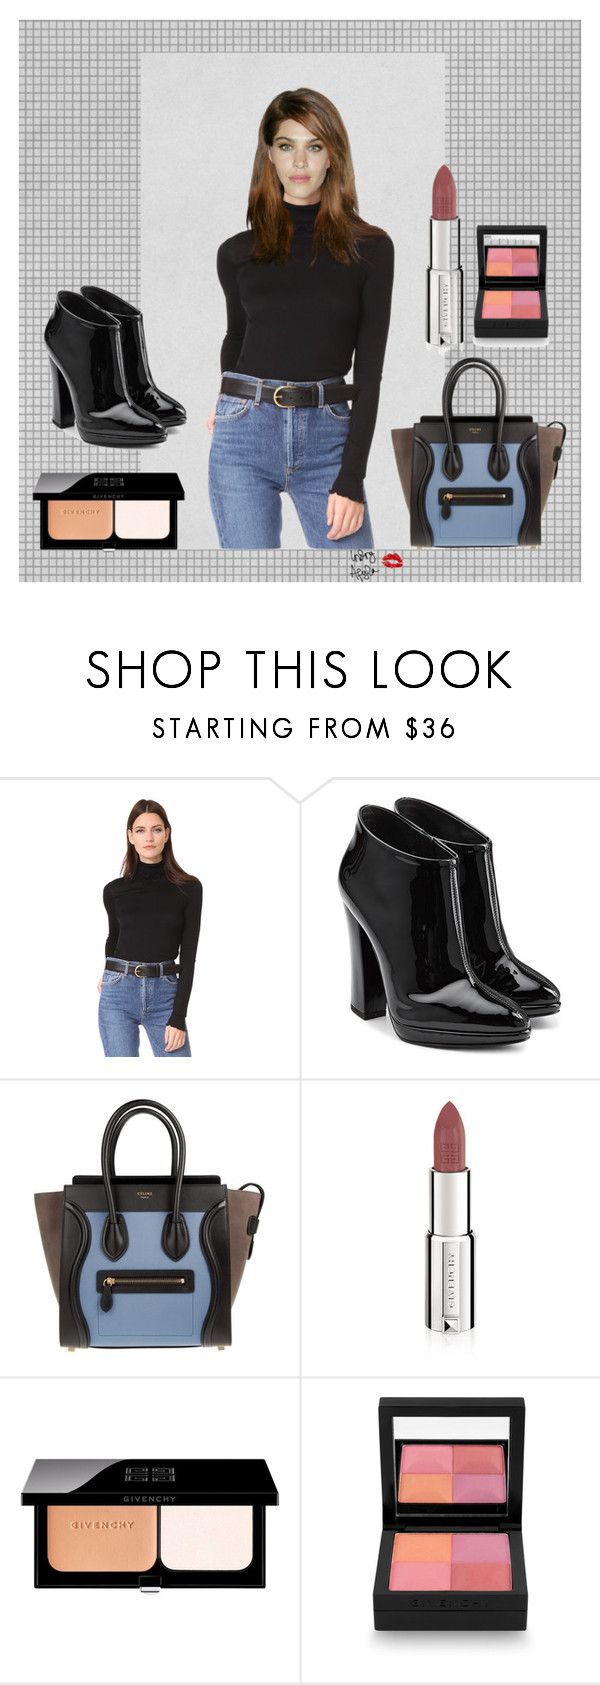 """""""Alexa Chung X Givenchy"""" by indryafyla ❤ liked on Polyvore featuring Ella Moss, Giuseppe Zanotti, CÉLINE, Givenchy, beautiful, celine, girl and alexachung"""